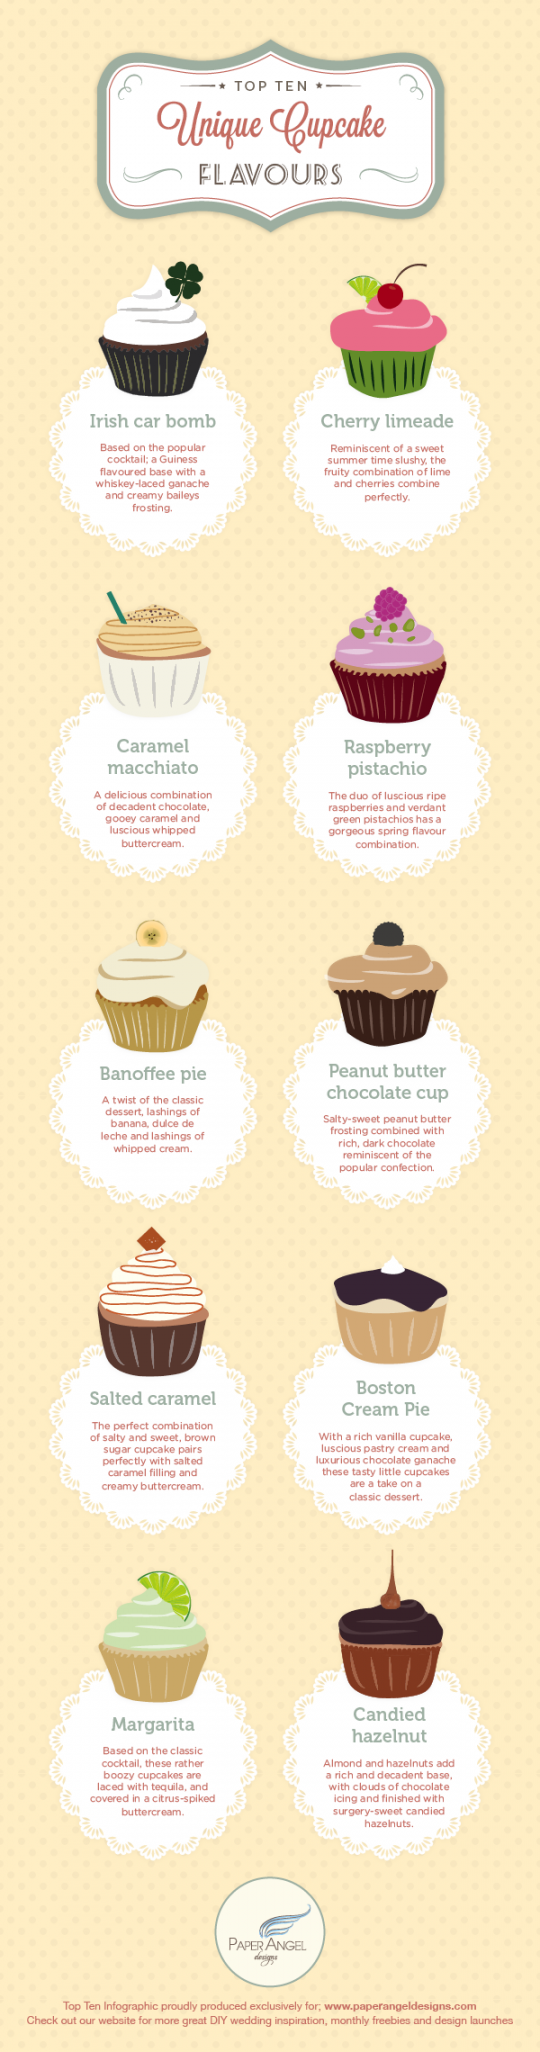 Top Ten Unique Cupcake Flavours